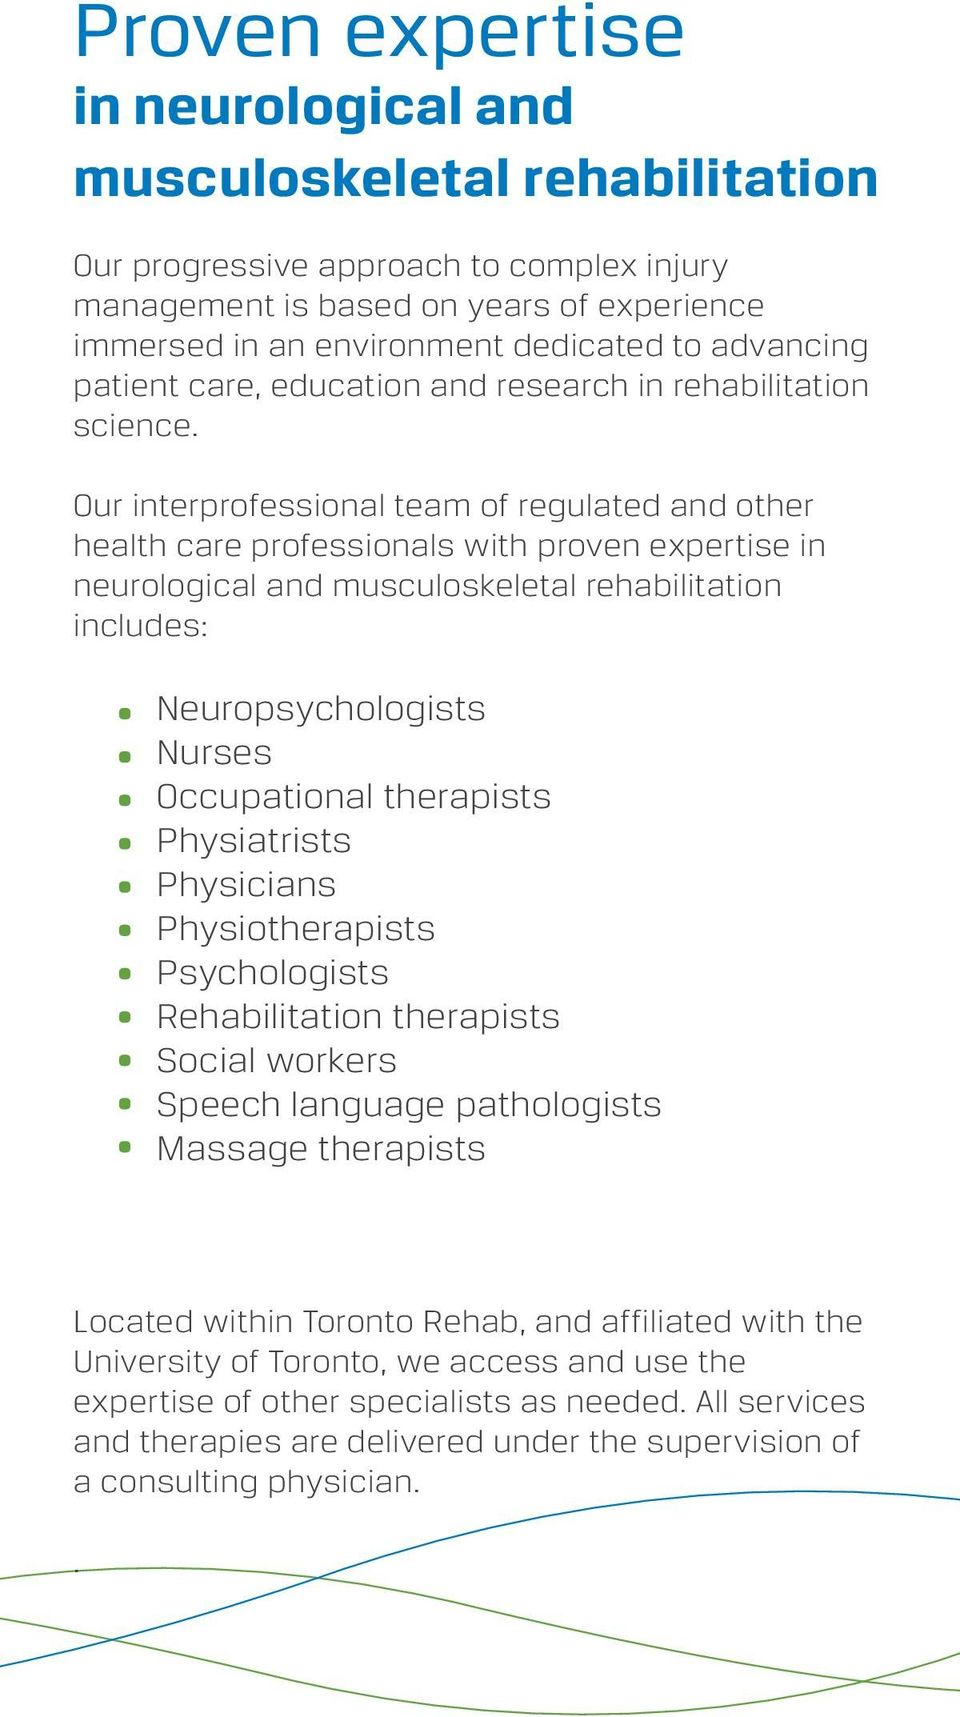 Our interprofessional team of regulated and other health care professionals with proven expertise in neurological and musculoskeletal rehabilitation includes: Neuropsychologists Nurses Occupational